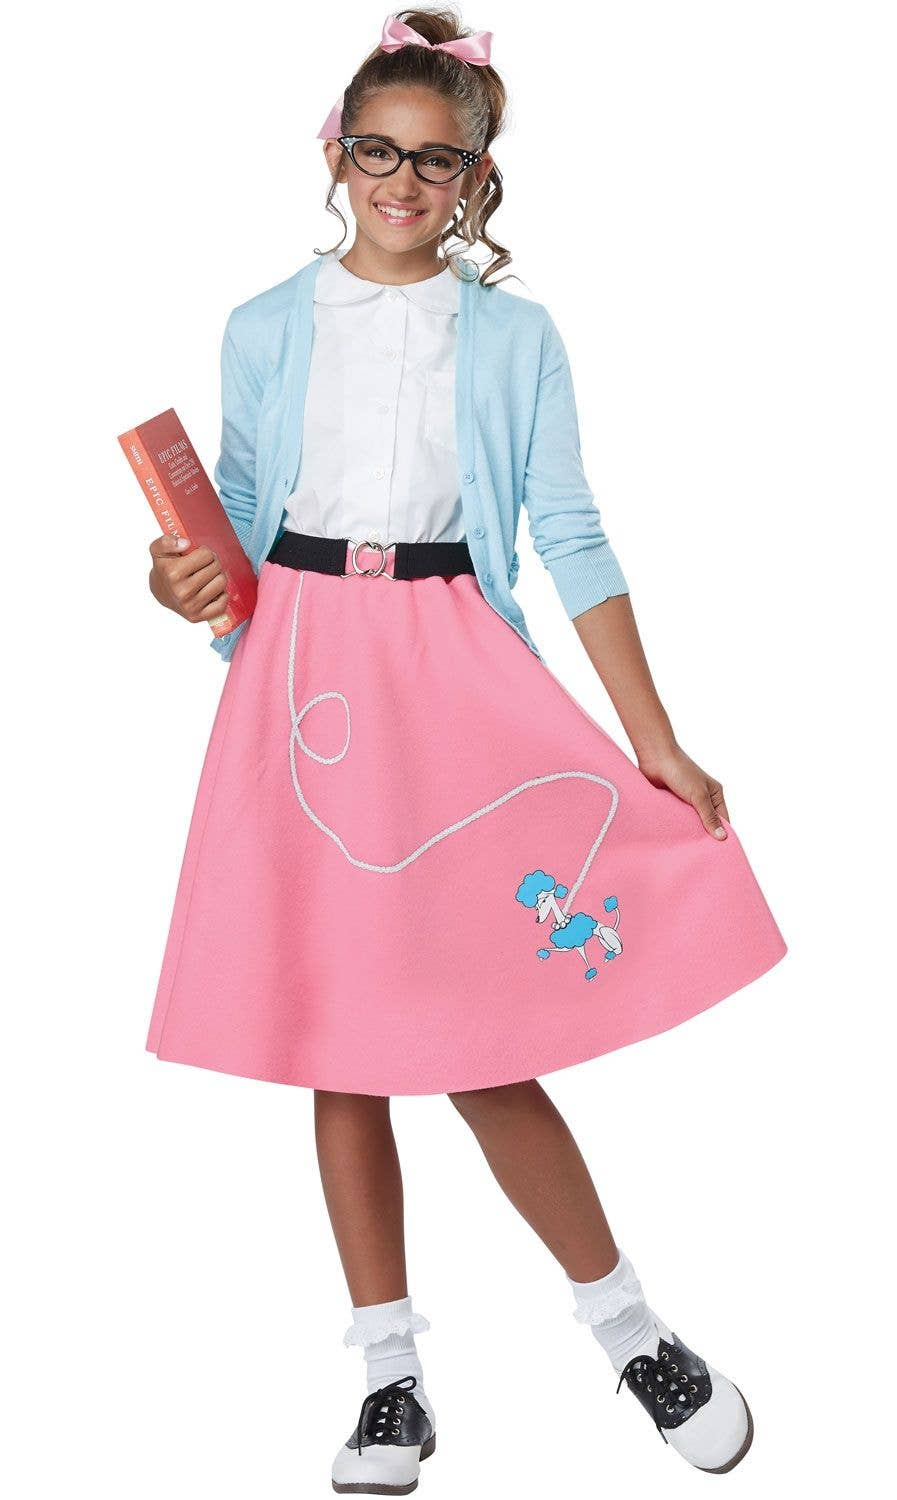 a89d835fa124 1950's Poodle Skirt Girls Costume | Retro 50's Girls Outfit Costume